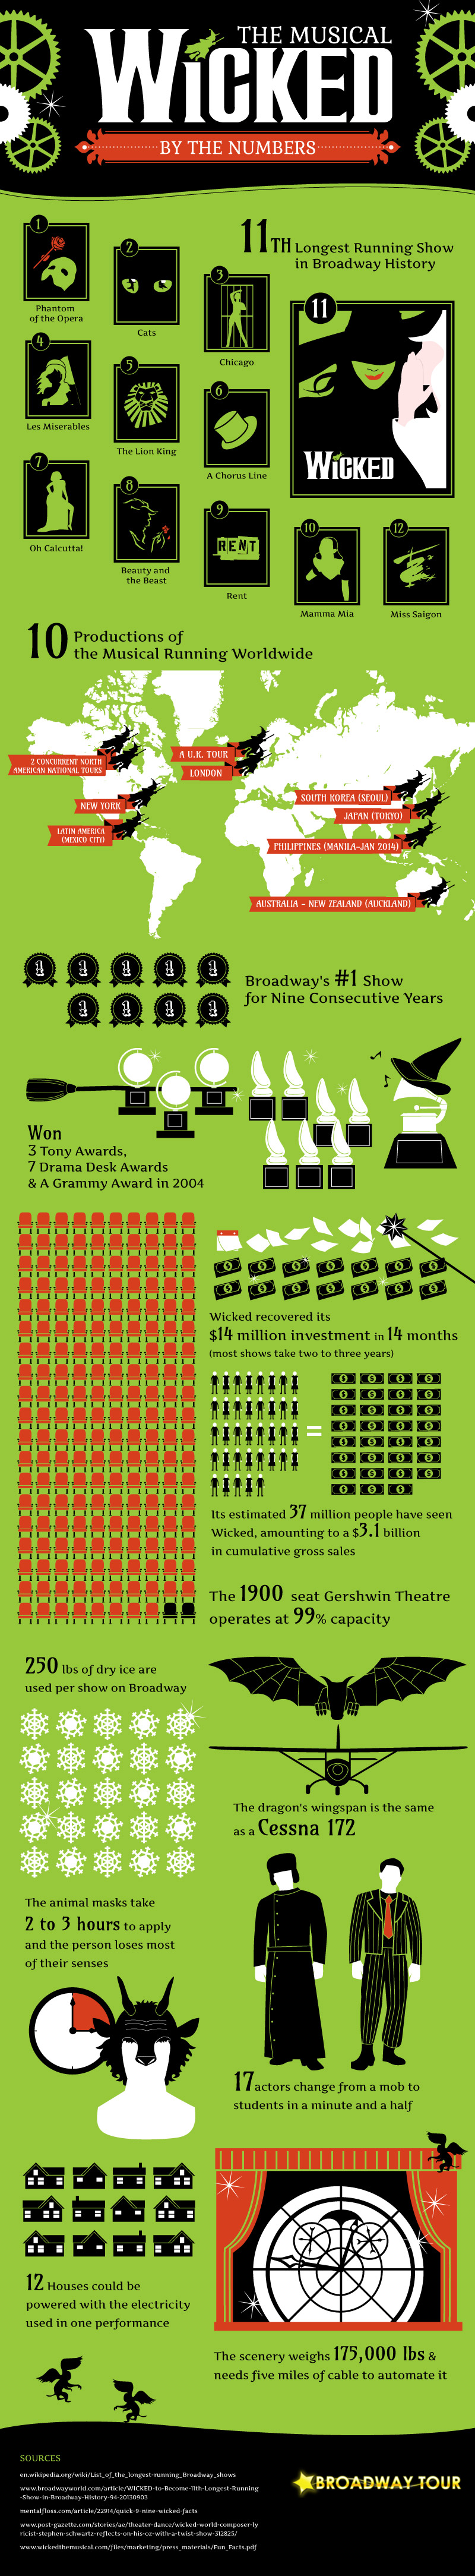 Wicked by the Numbers Infographic